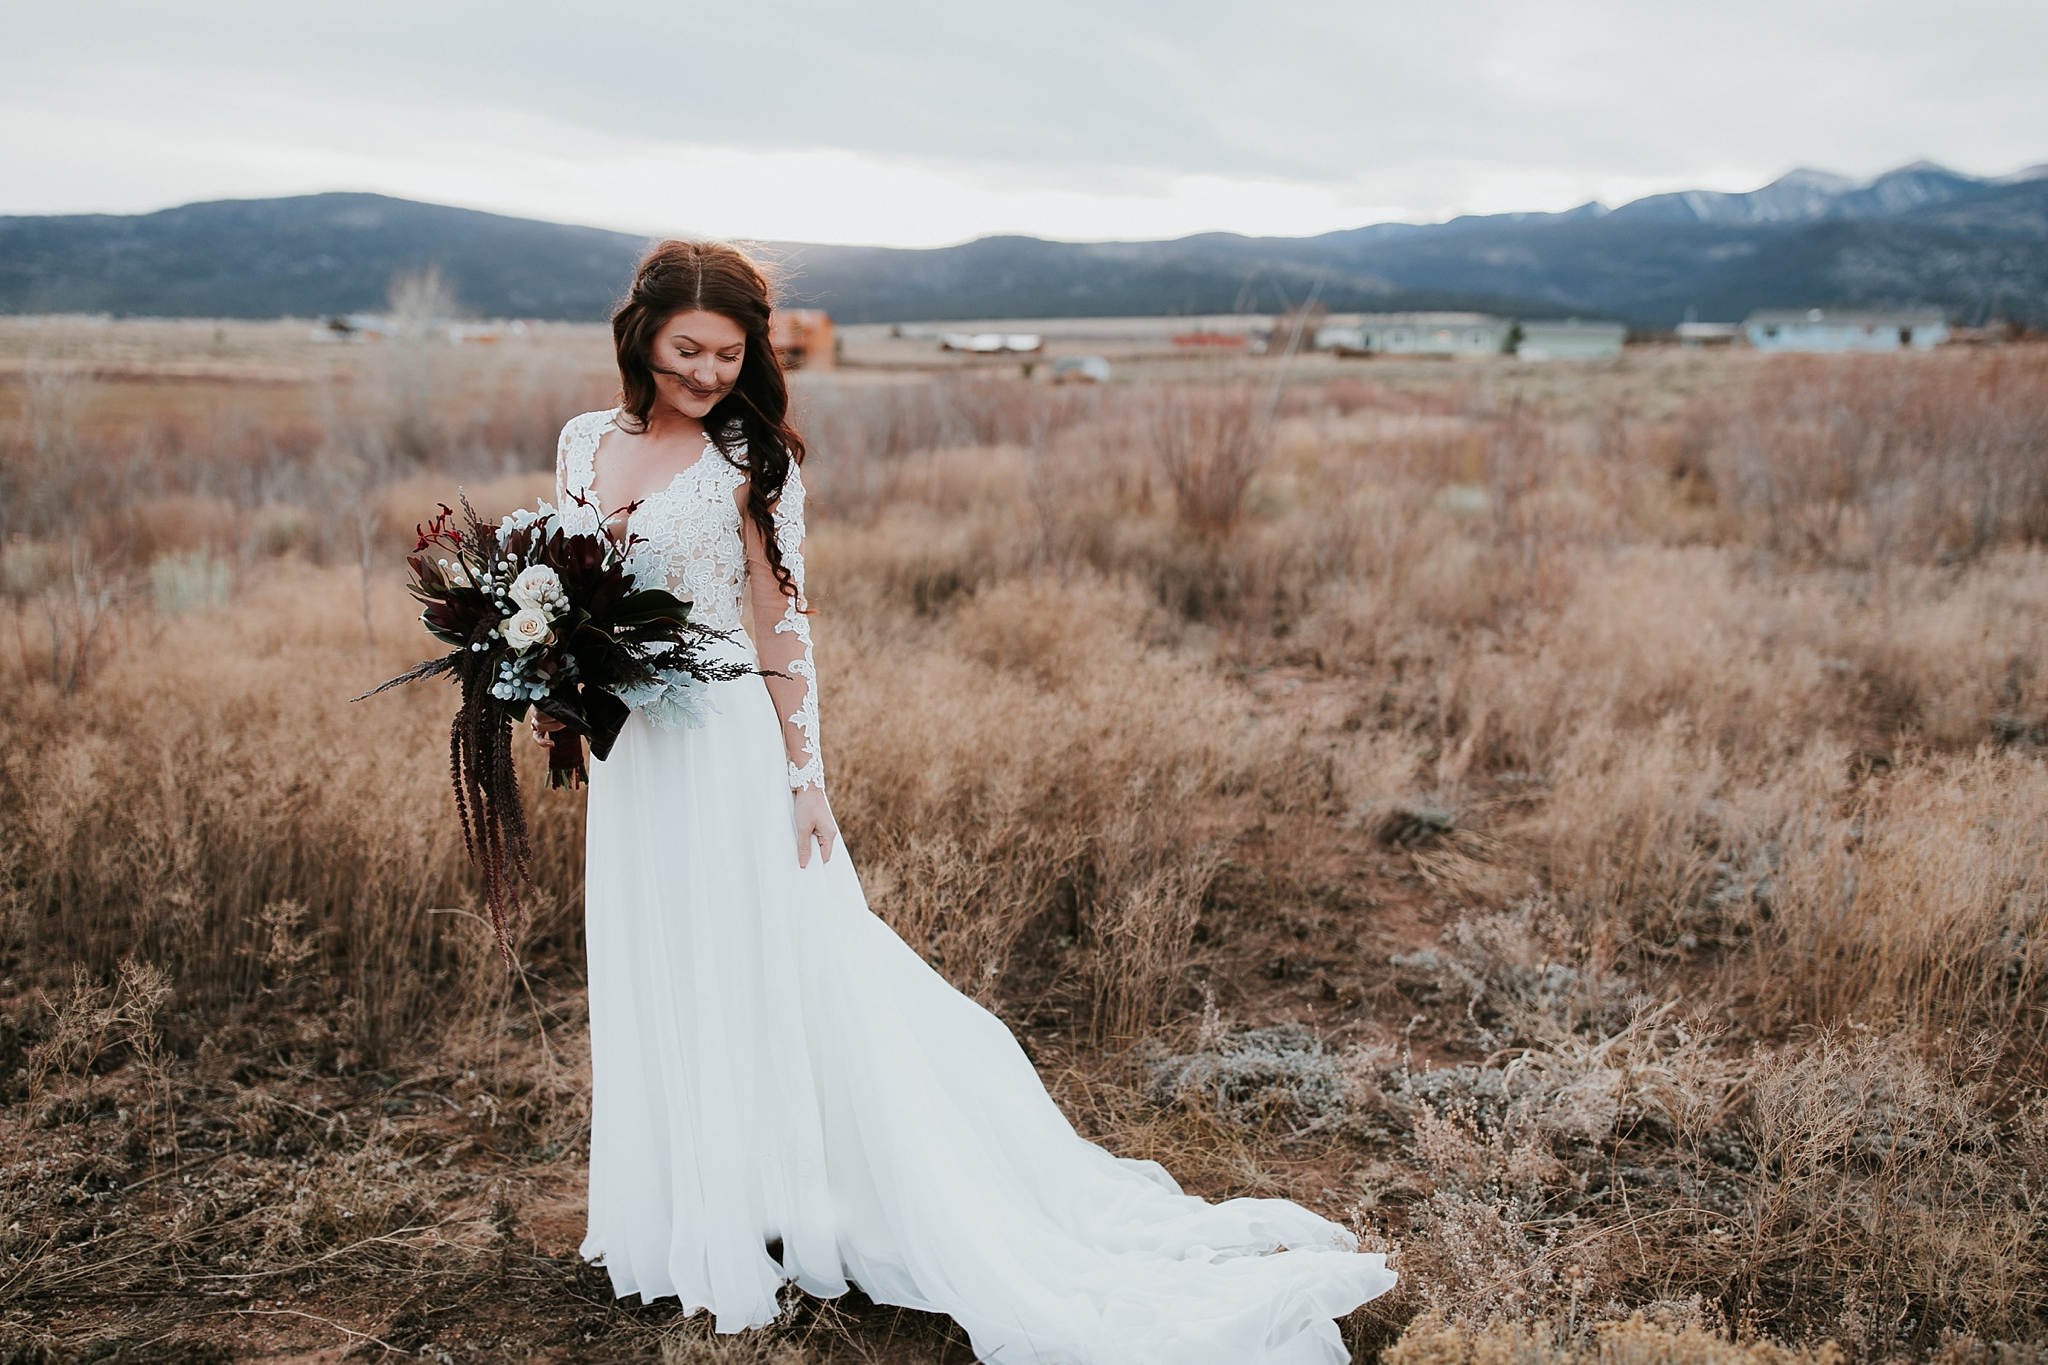 Alicia+lucia+photography+-+albuquerque+wedding+photographer+-+santa+fe+wedding+photography+-+new+mexico+wedding+photographer+-+new+mexico+wedding+-+wedding+gowns+-+bridal+gowns+-+a+line+wedding+gown_0011.jpg